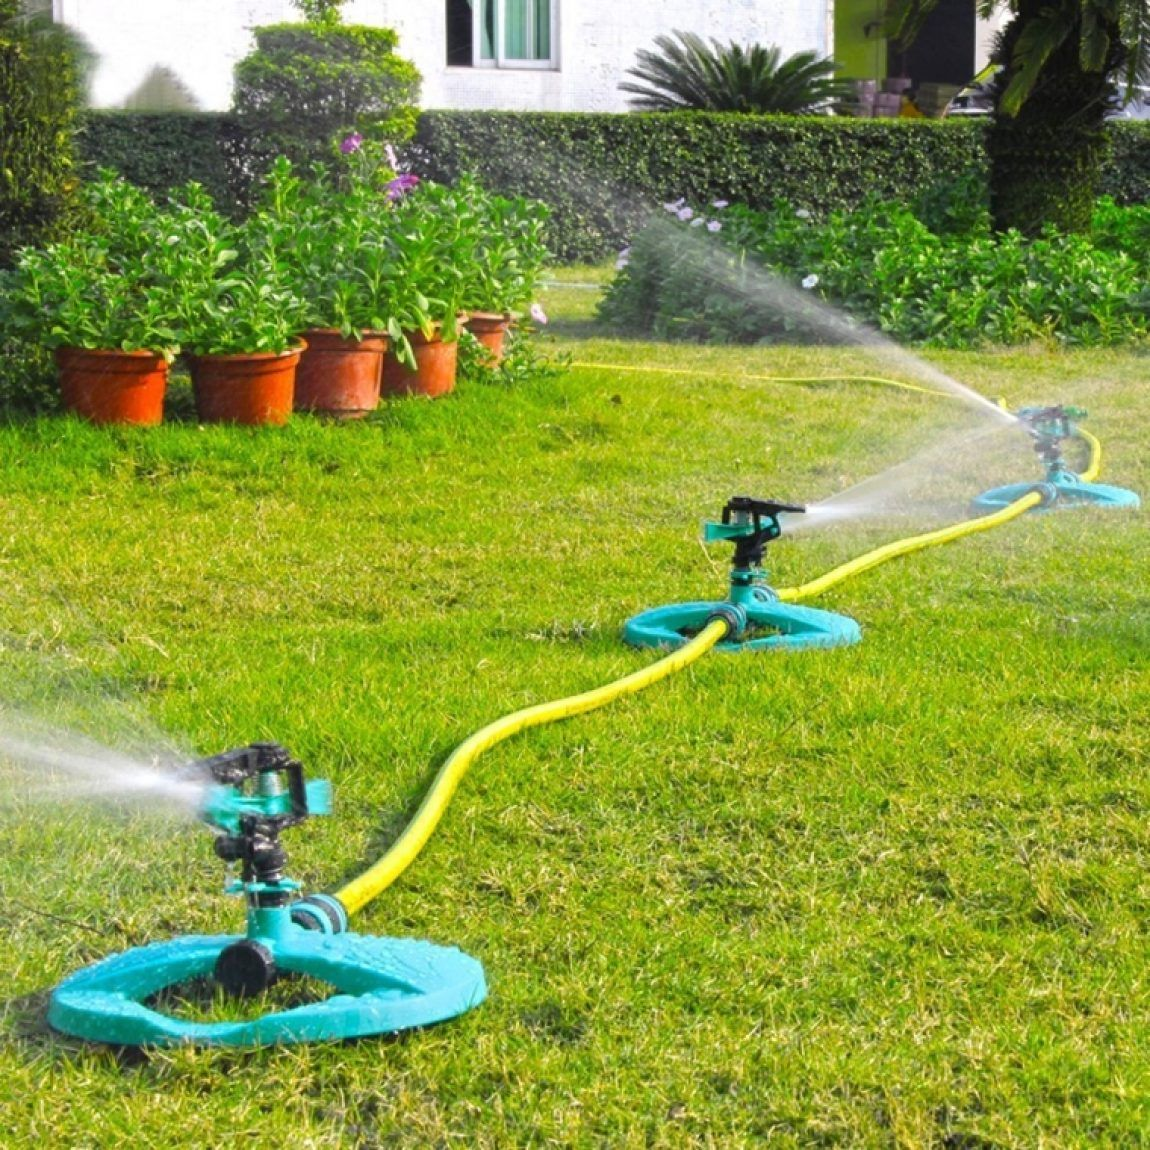 Water Sprinkler System Impulse Long Range Sprinklers For